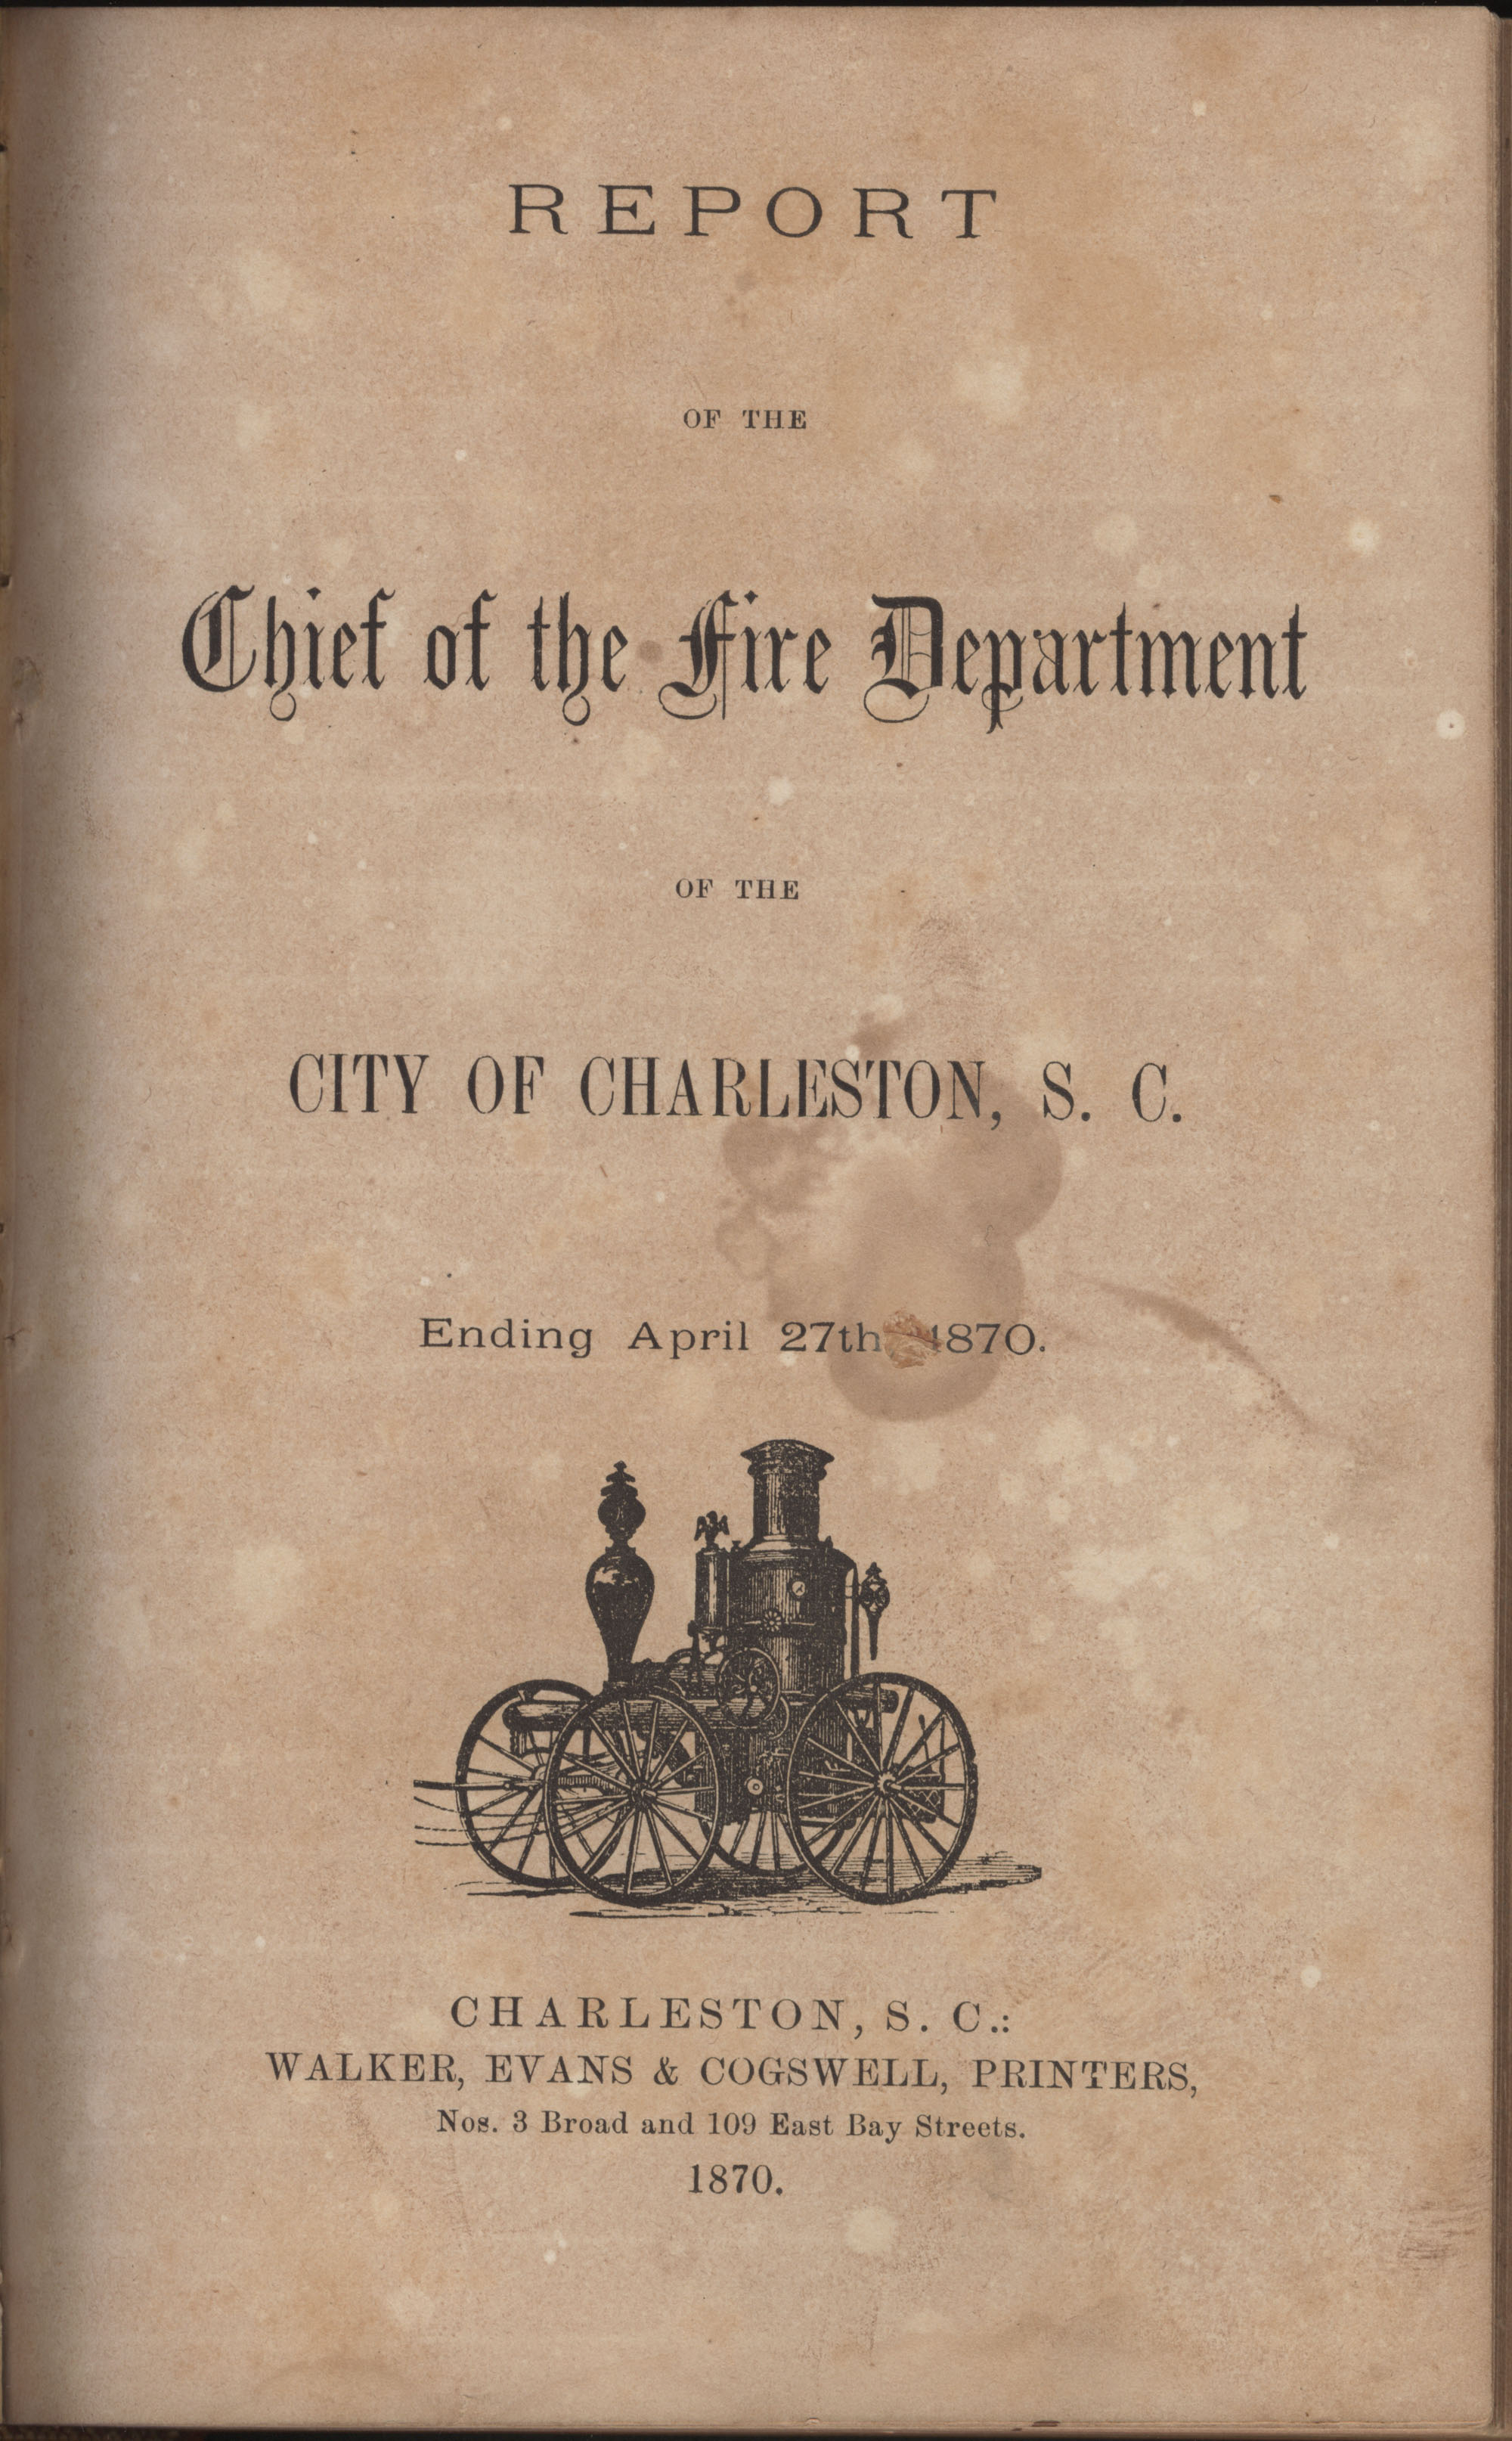 Annual Report of the Chief of the Fire Department of the City of Charleston, page 294